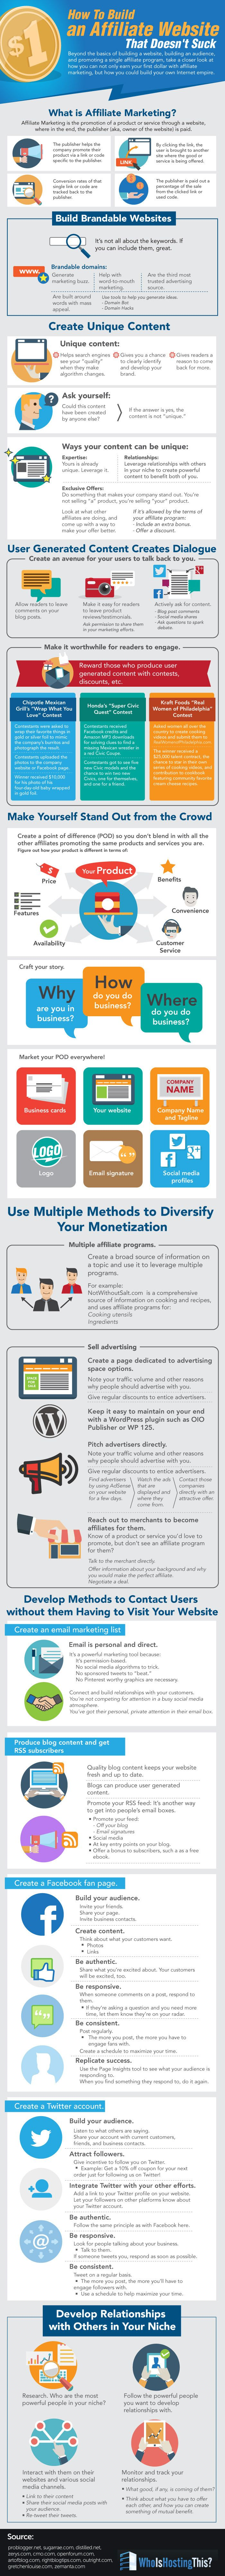 How to Build an Affiliate Website That Doesn't Suck   #infographic #AffiliateWebsite #Marketing